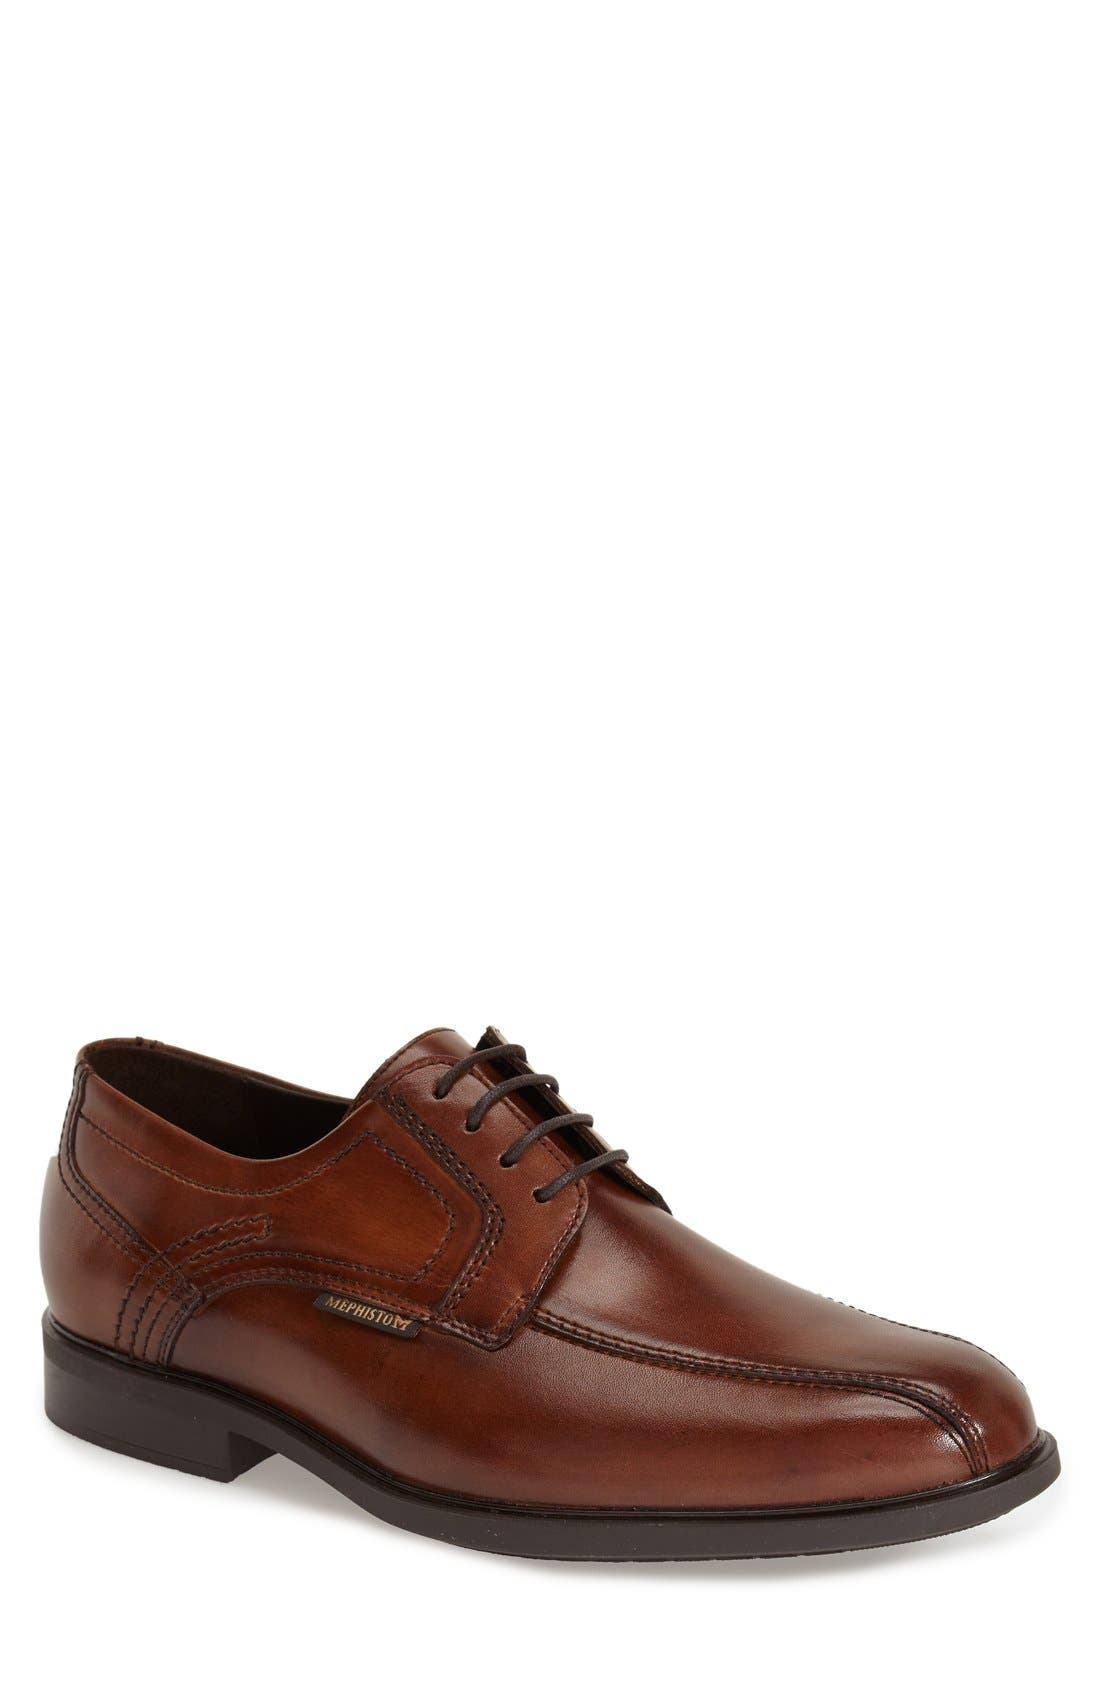 Alternate Image 1 Selected - Mephisto 'Fabio' Bicycle Toe Derby (Men)